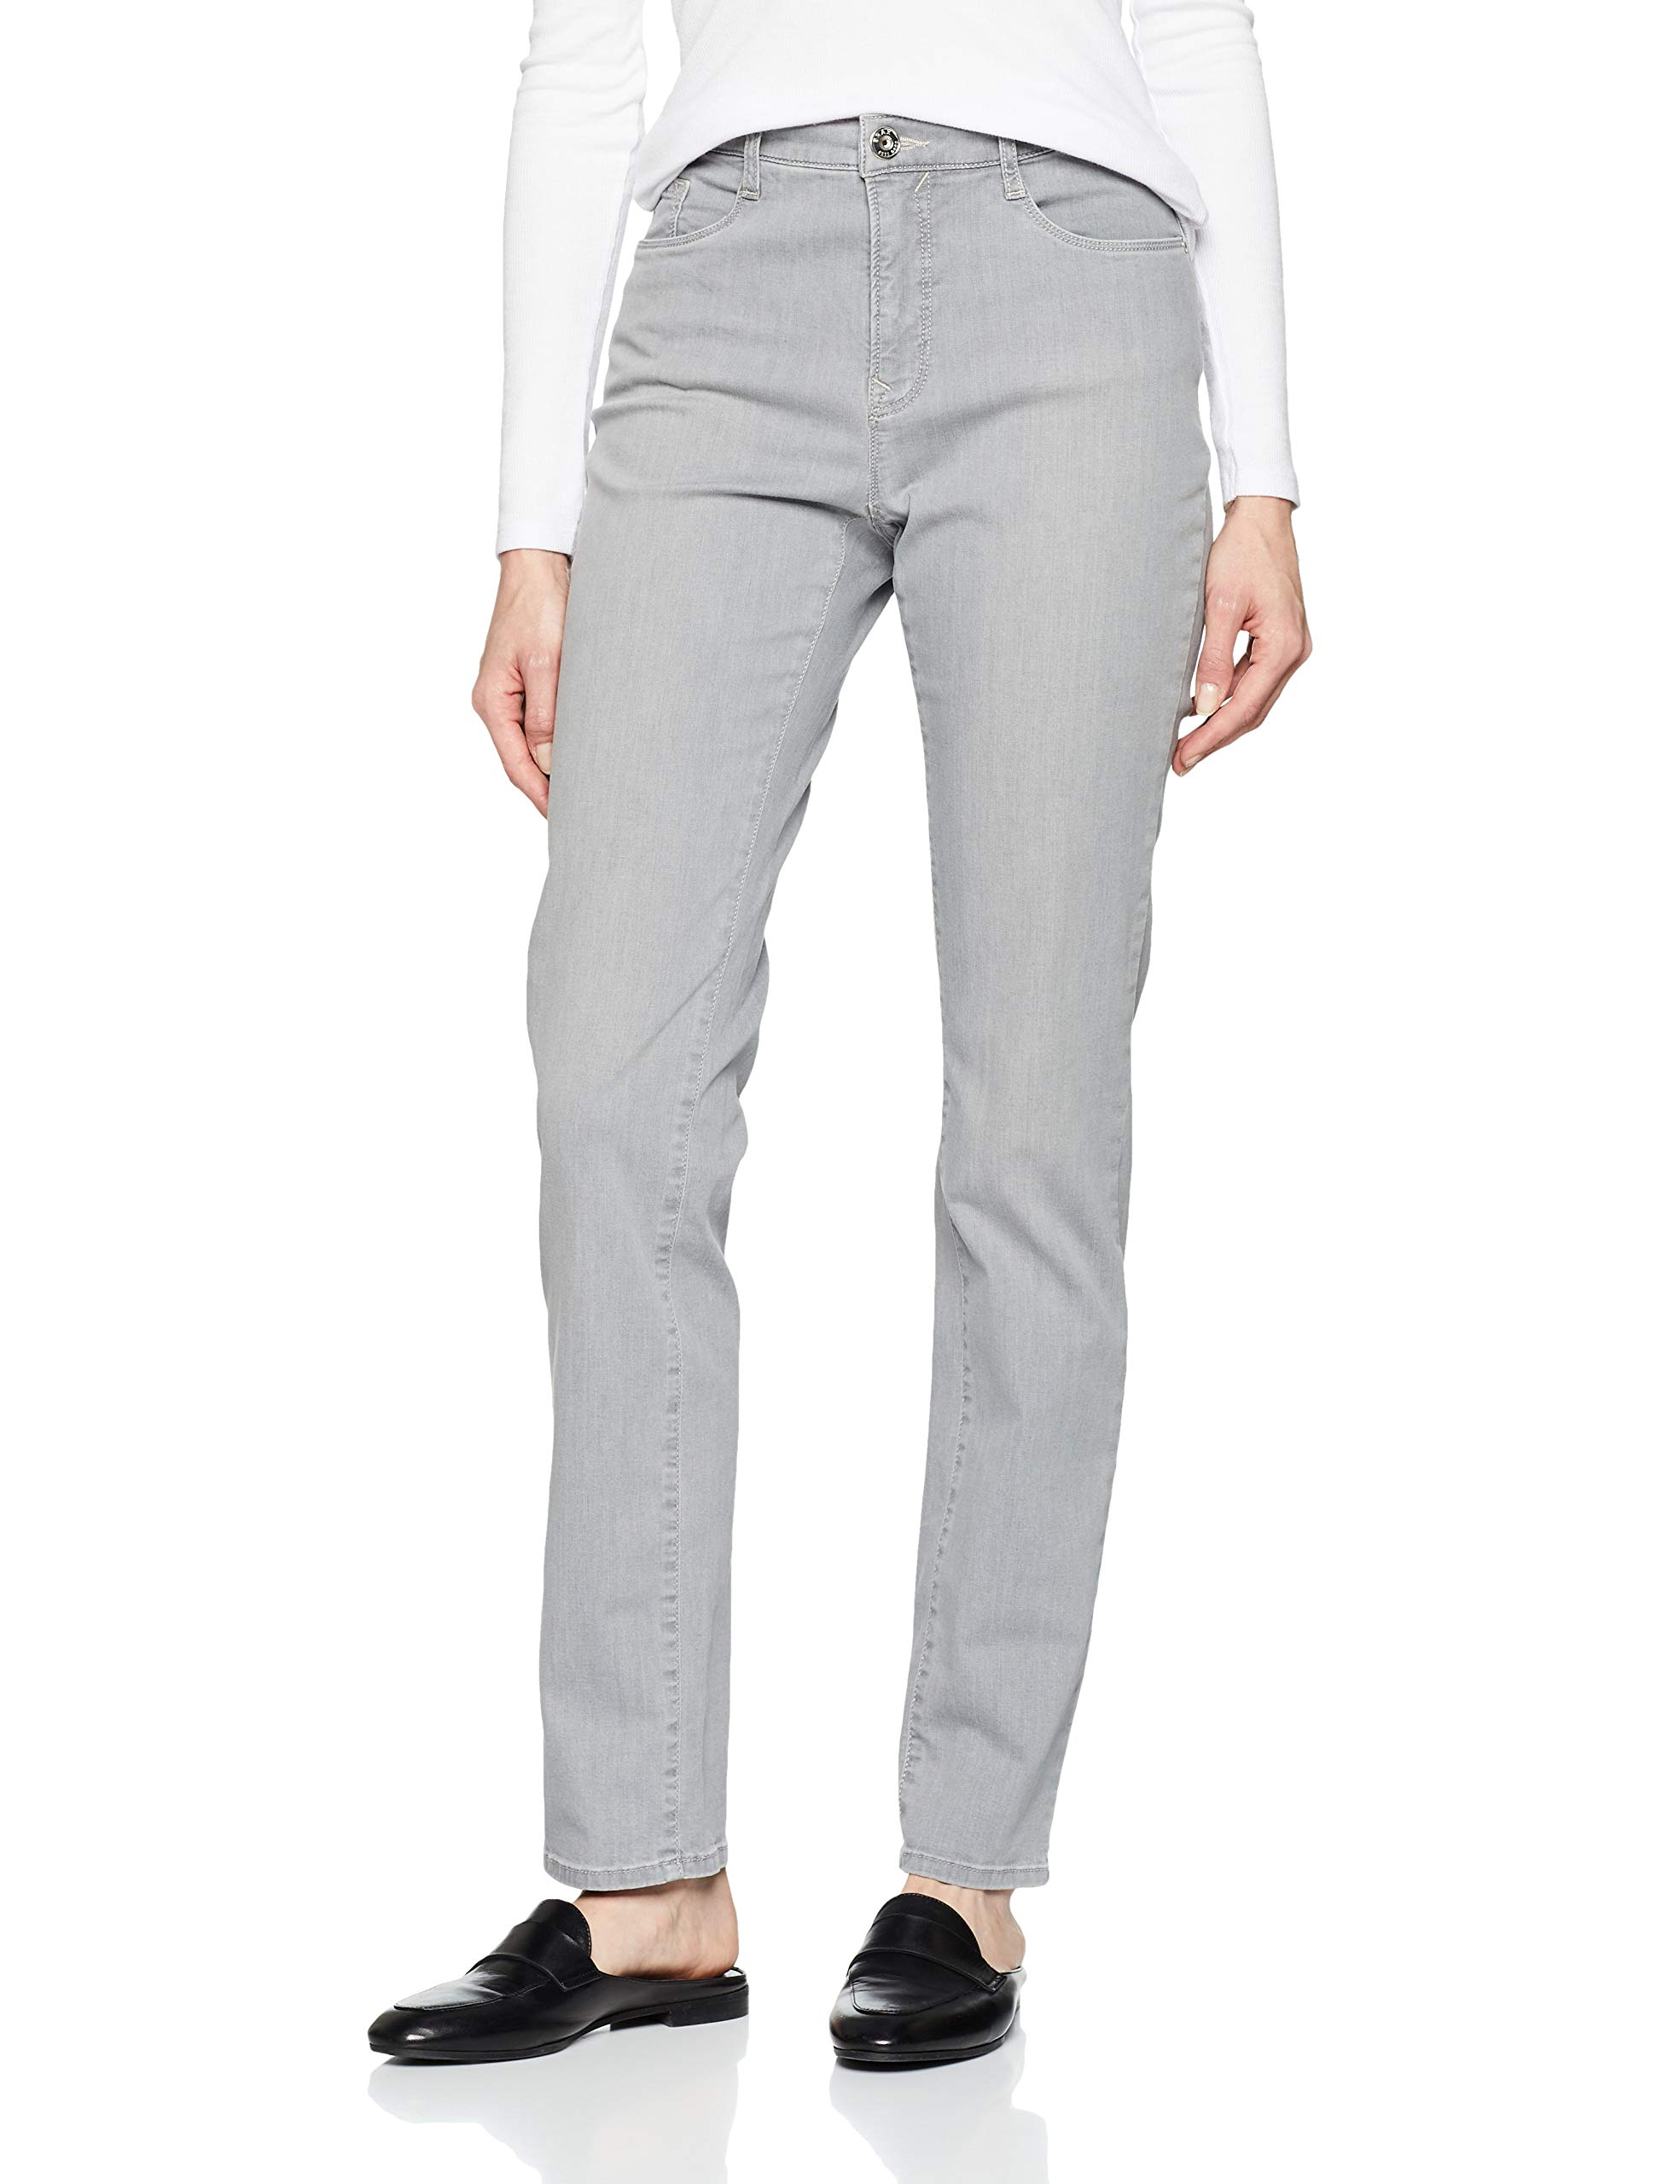 Simply Pocket l34taille Five FitGrisused Mary Jeans Slim Brax Grey 04W34 Brilliant Fabricant44lFemme 7gyIYf6bv